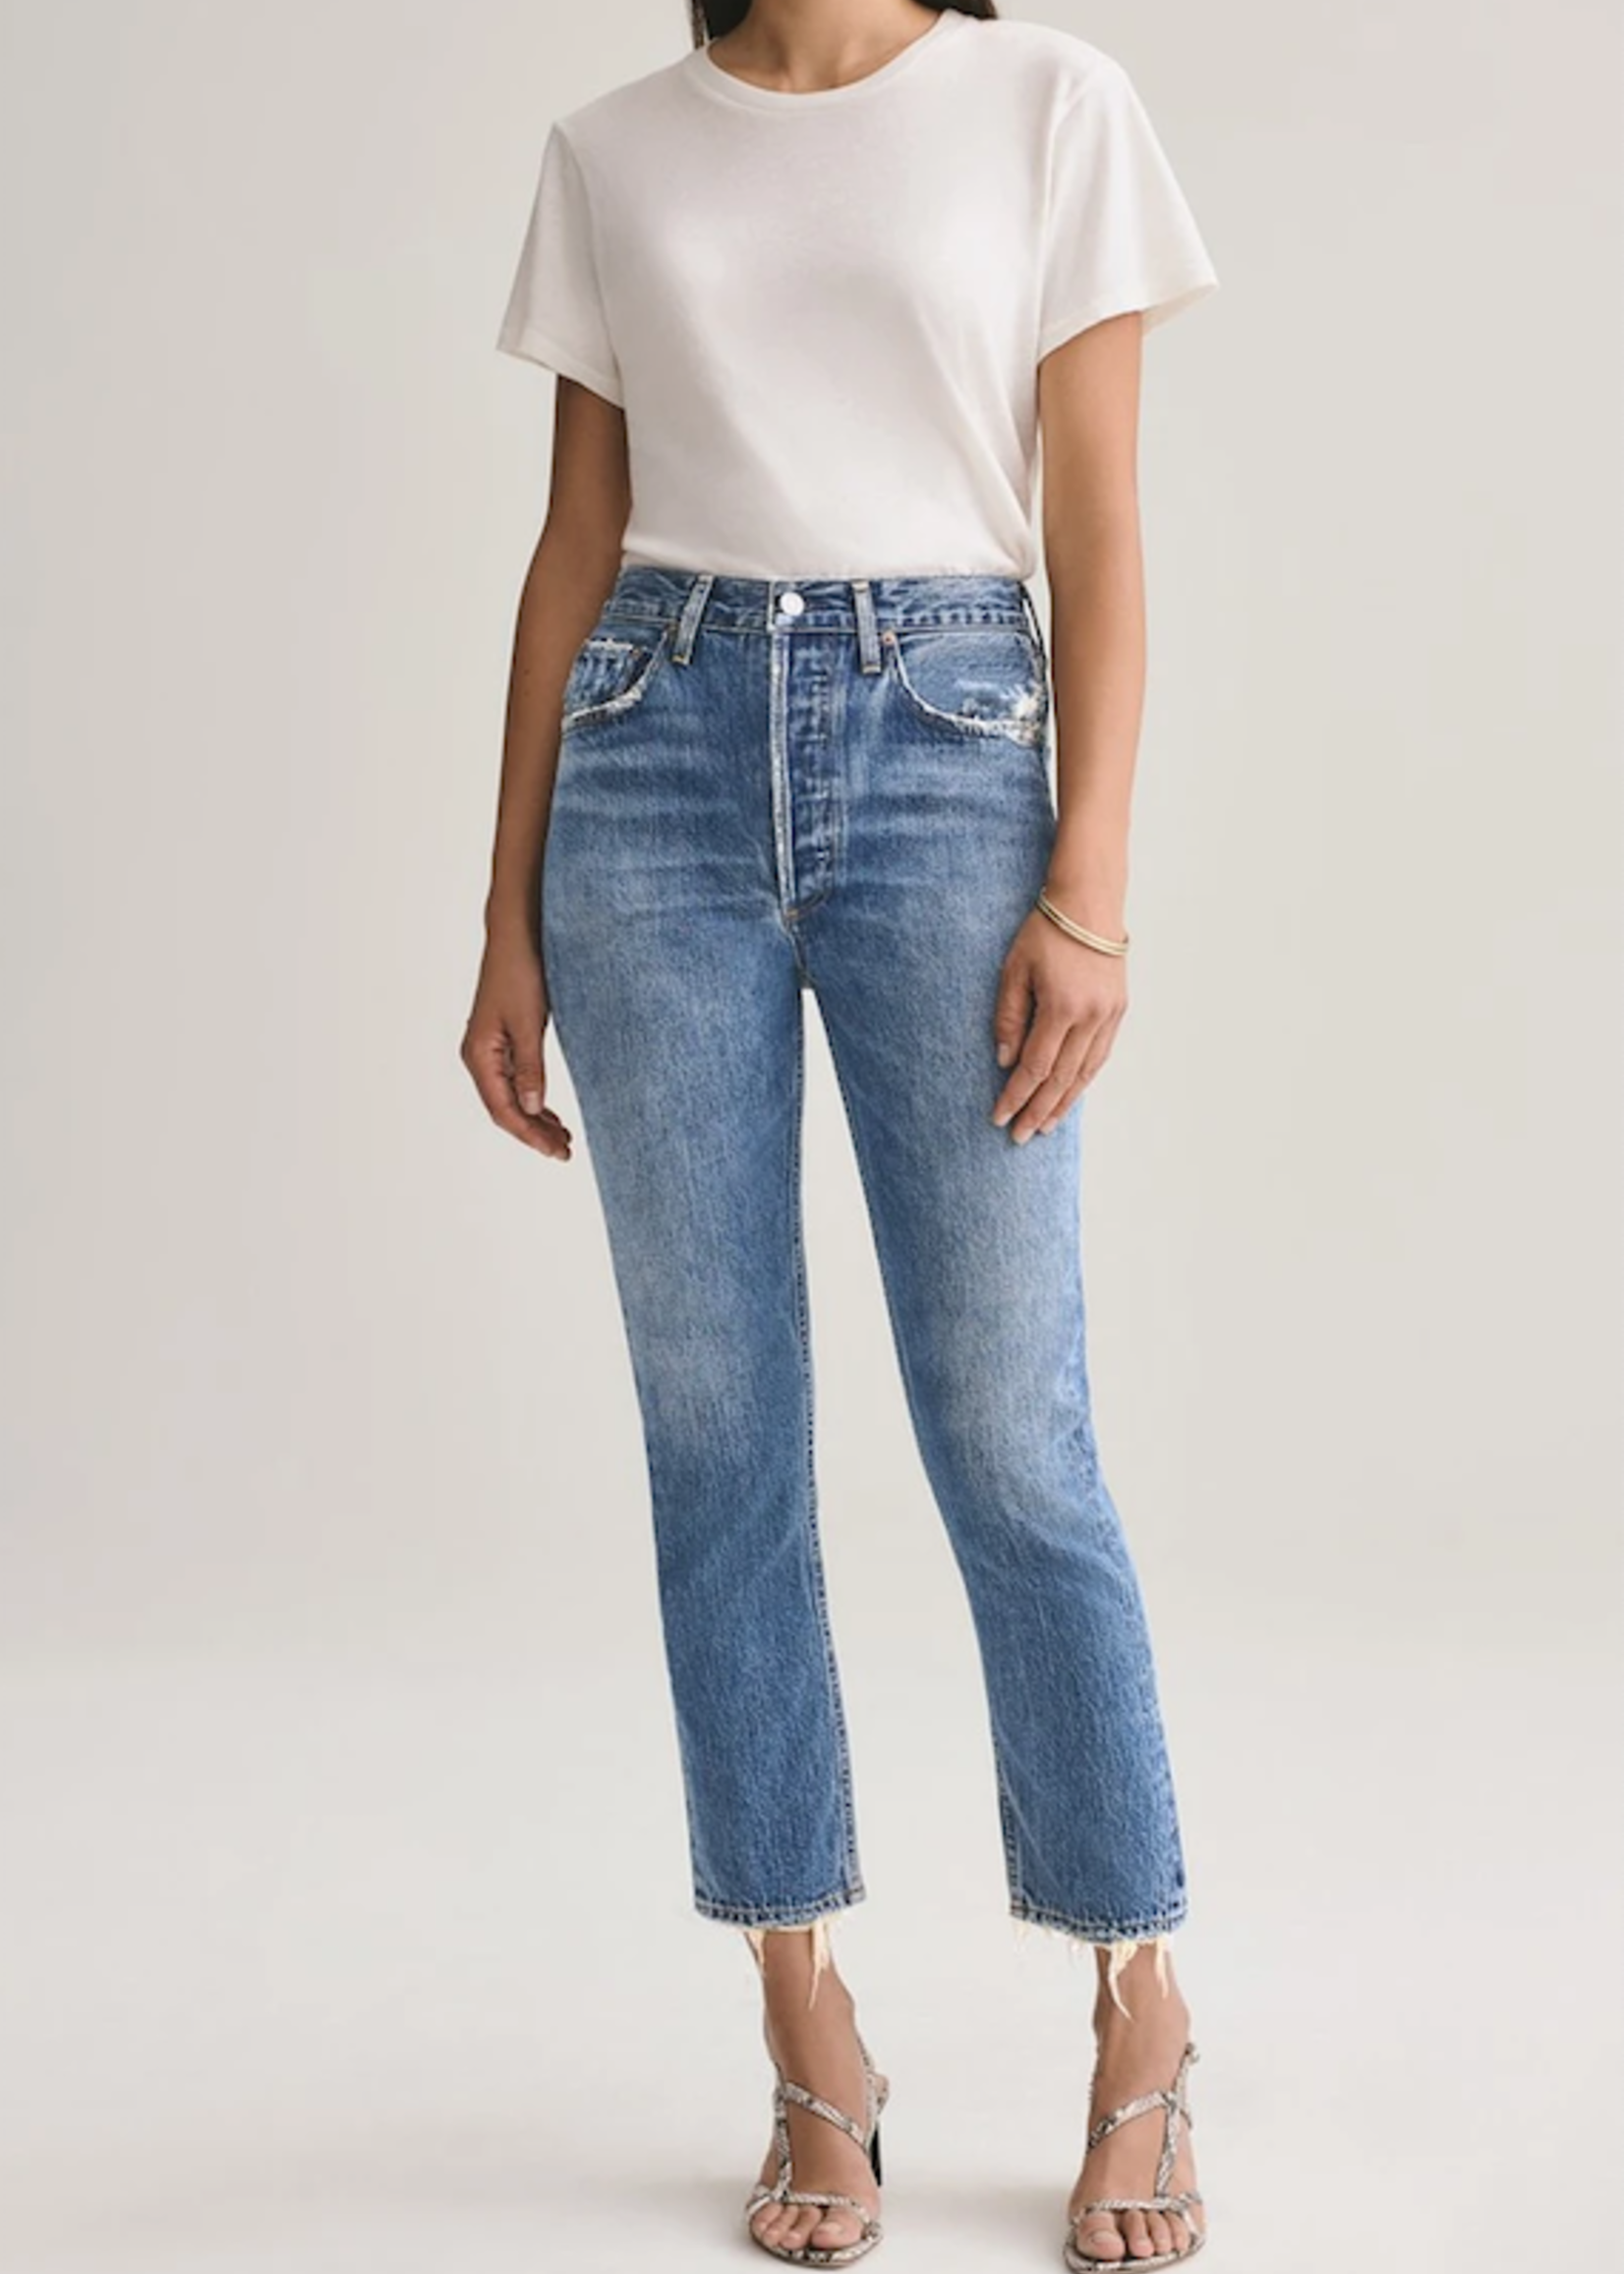 Elitaire Boutique The Riley High Rise Crop in Frequency